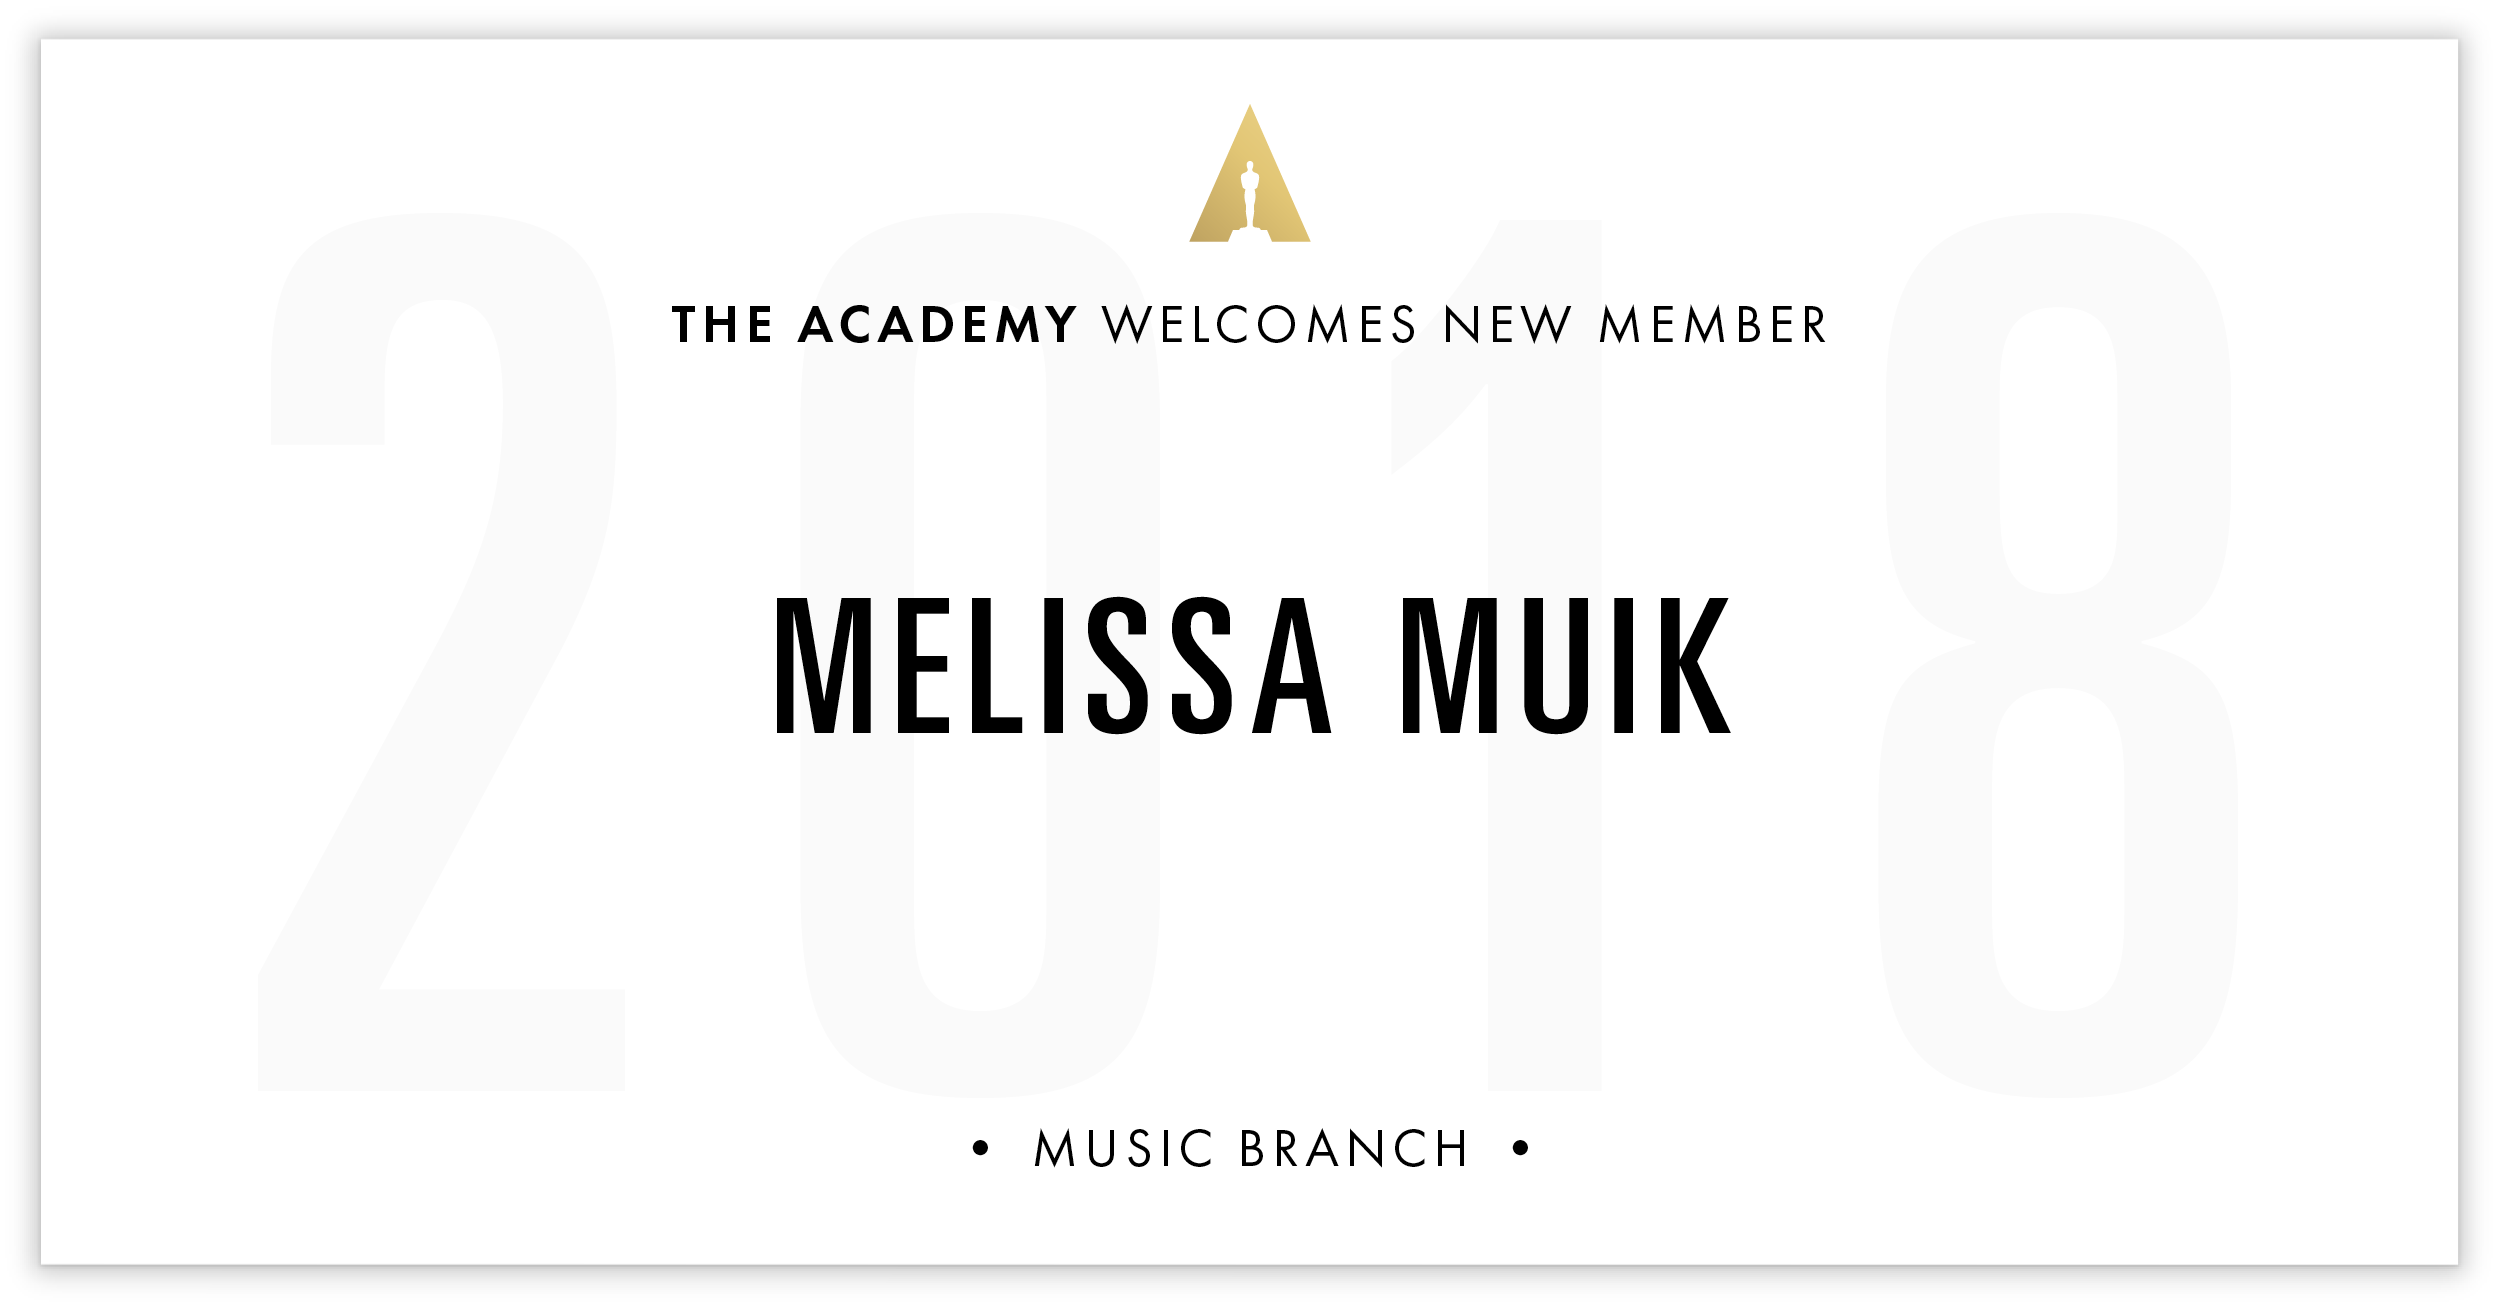 Melissa Muik is invited!